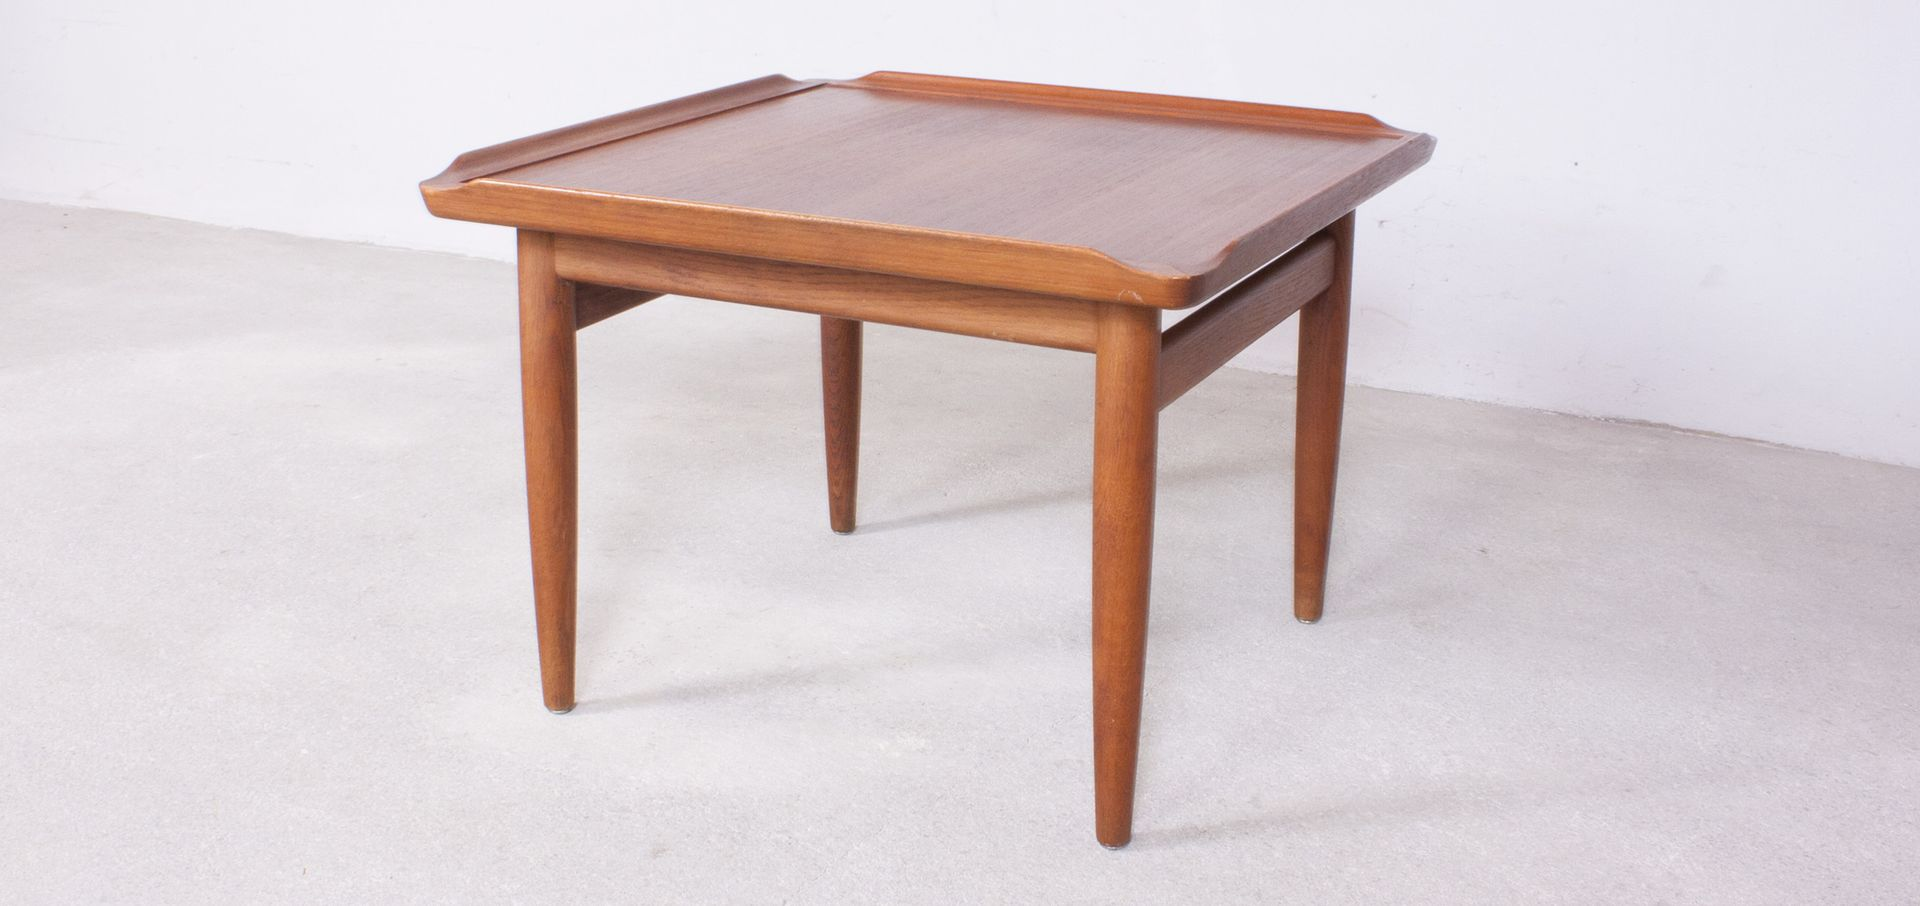 danish teak side table with surfboard edges by kurt Østervig for  - danish teak side table with surfboard edges by kurt Østervig for jasonmøbler s